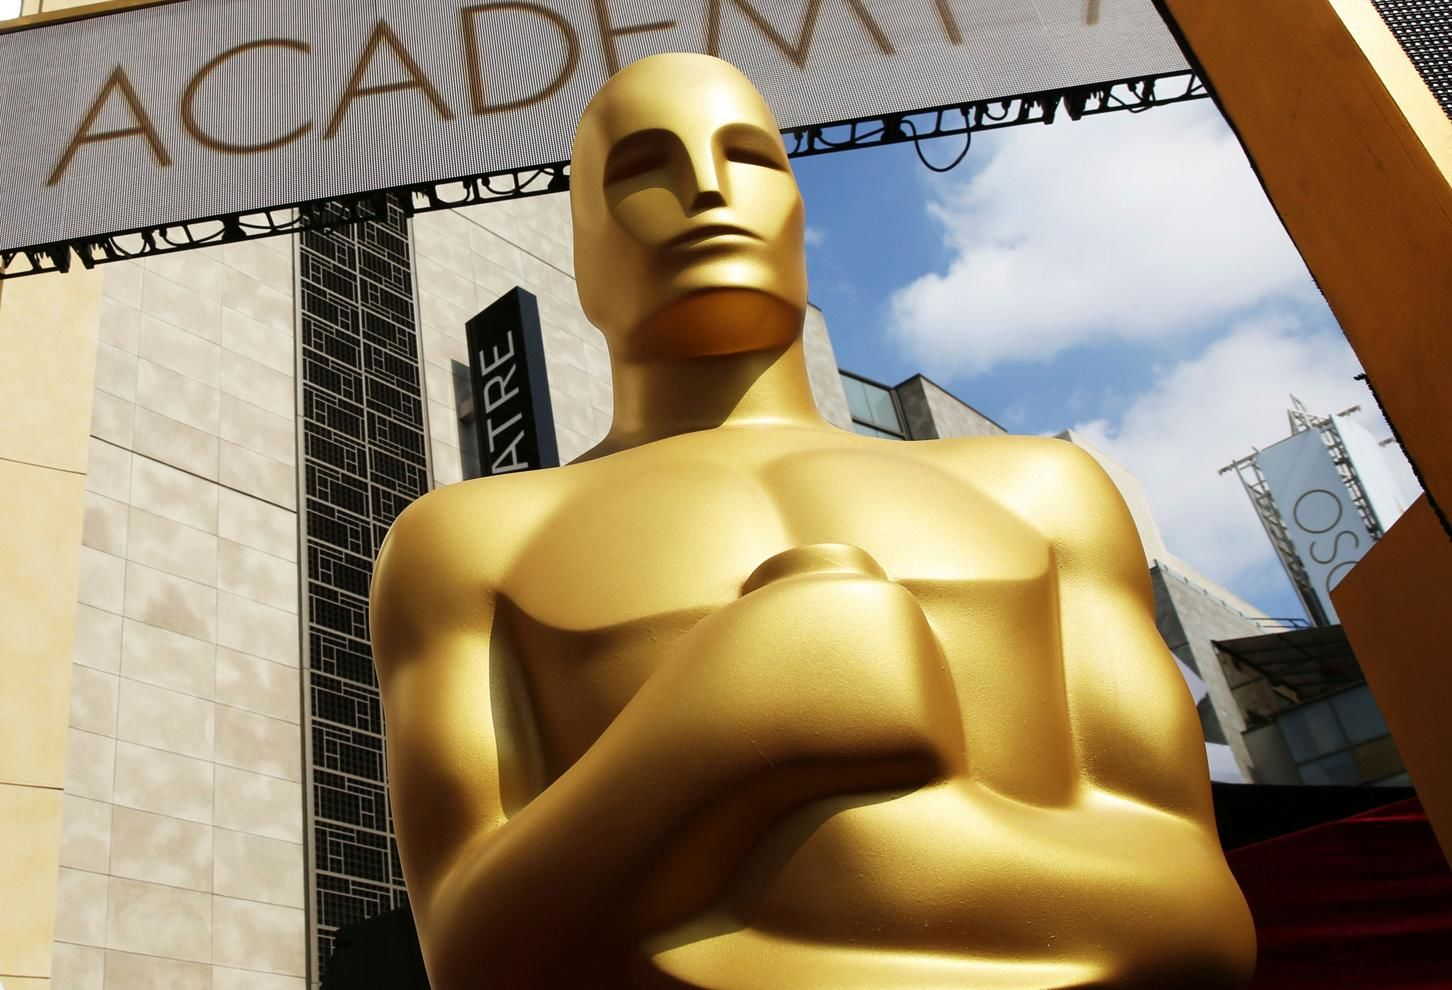 FILE - In this Feb. 21, 2015 file photo, an Oscar statue appears outside the Dolby Theatre for the 87th Academy Awards in Los Angeles.{ } (Photo by Matt Sayles/Invision/AP, File)